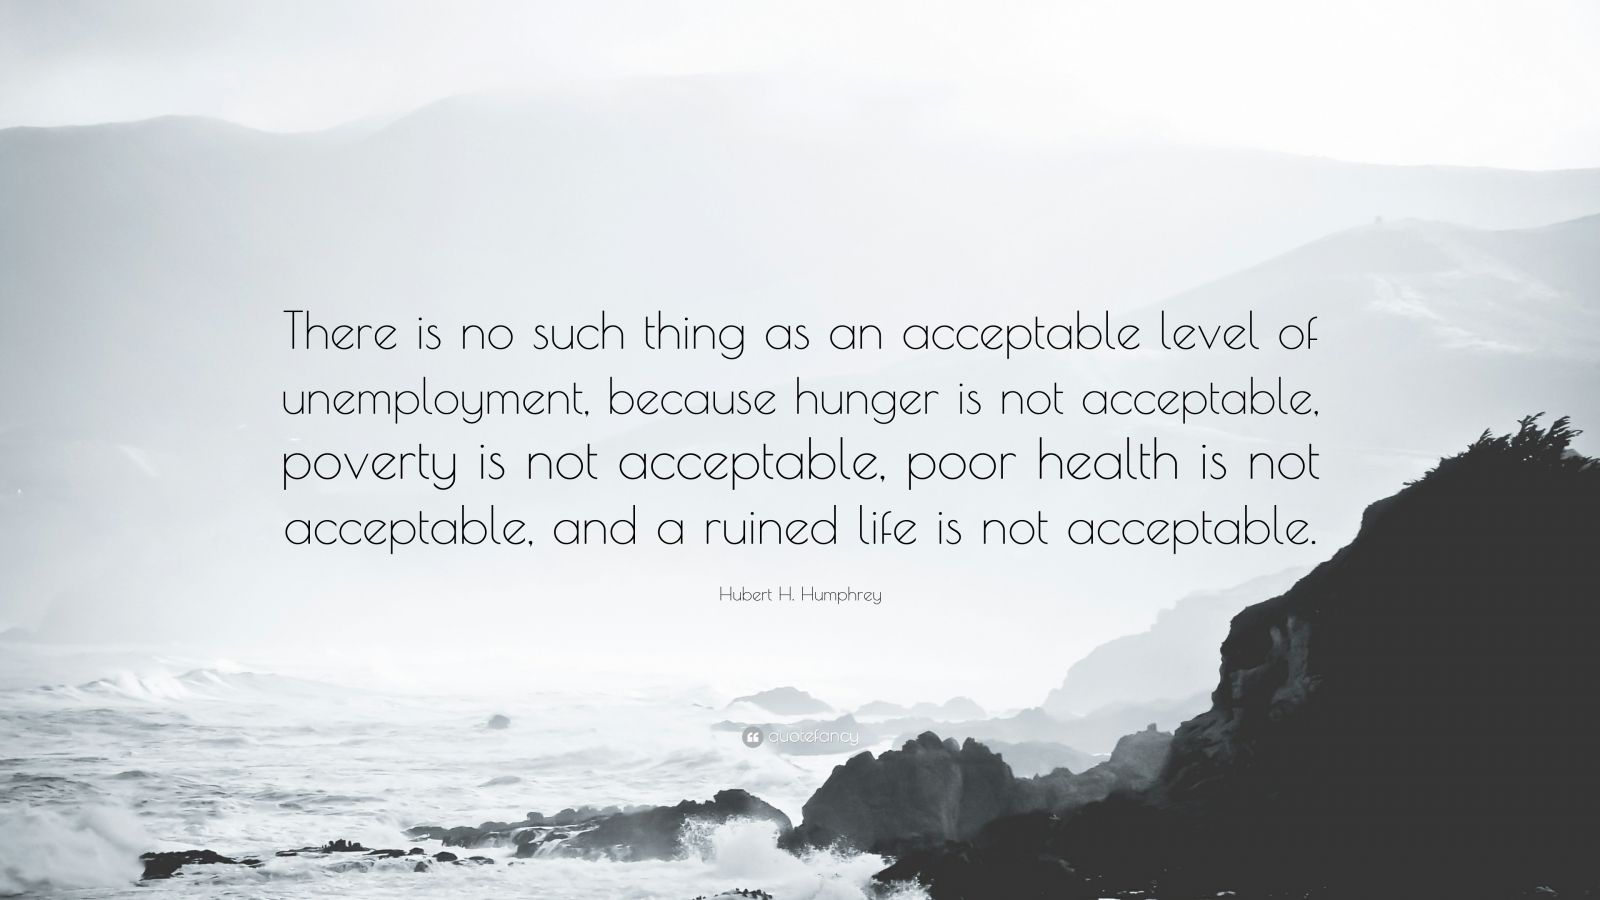 """Hubert H. Humphrey Quote: """"There is no such thing as an acceptable level of unemployment, because hunger is not acceptable, poverty is not acceptable, poor health is not acceptable, and a ruined life is not acceptable."""""""